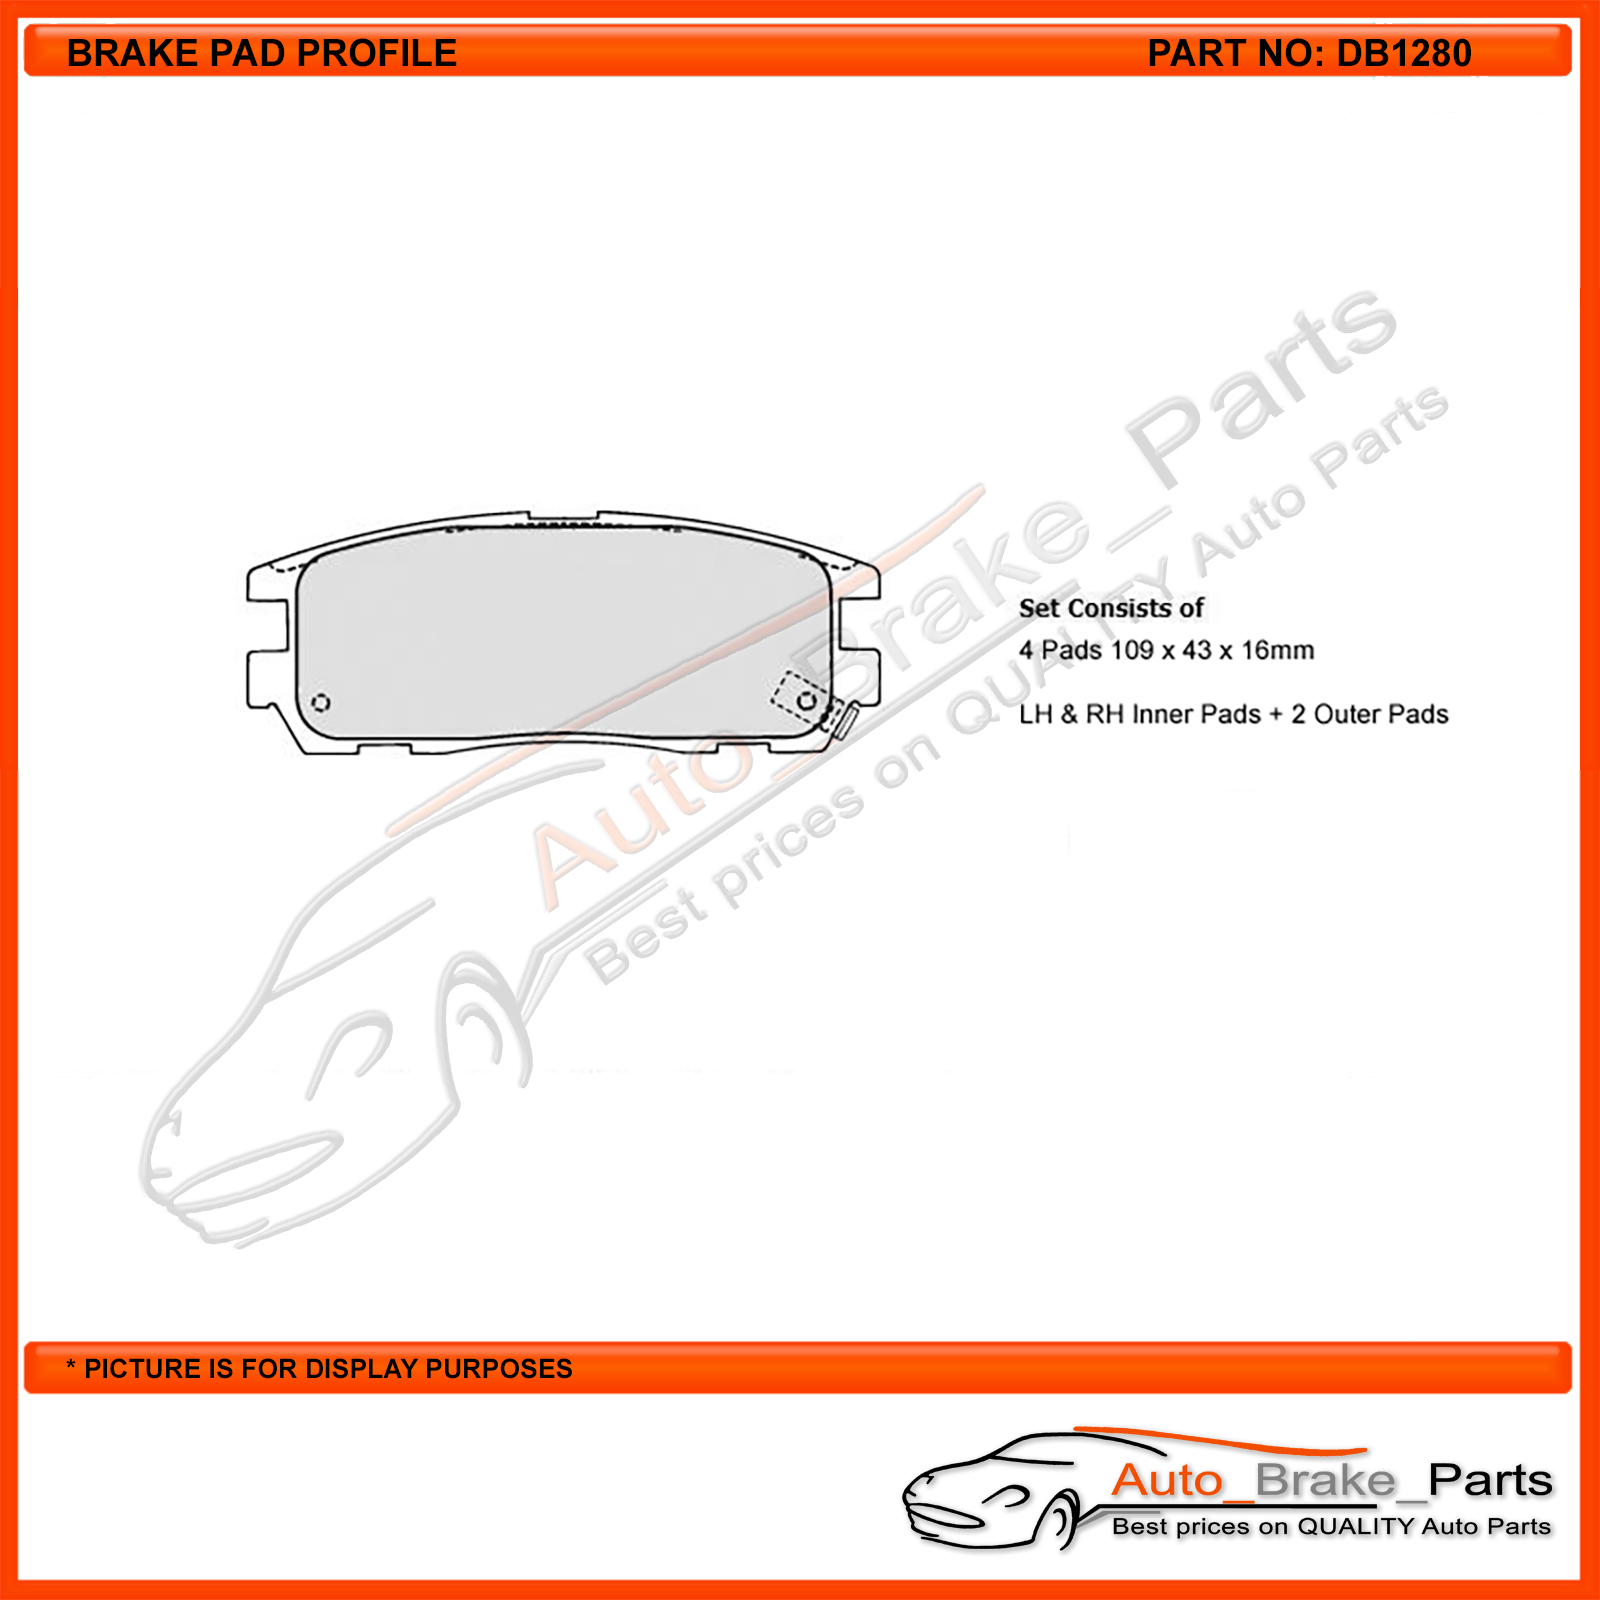 Auto Brake Parts - Protex Blue Rear Brake Pads for HOLDEN RODEO TF